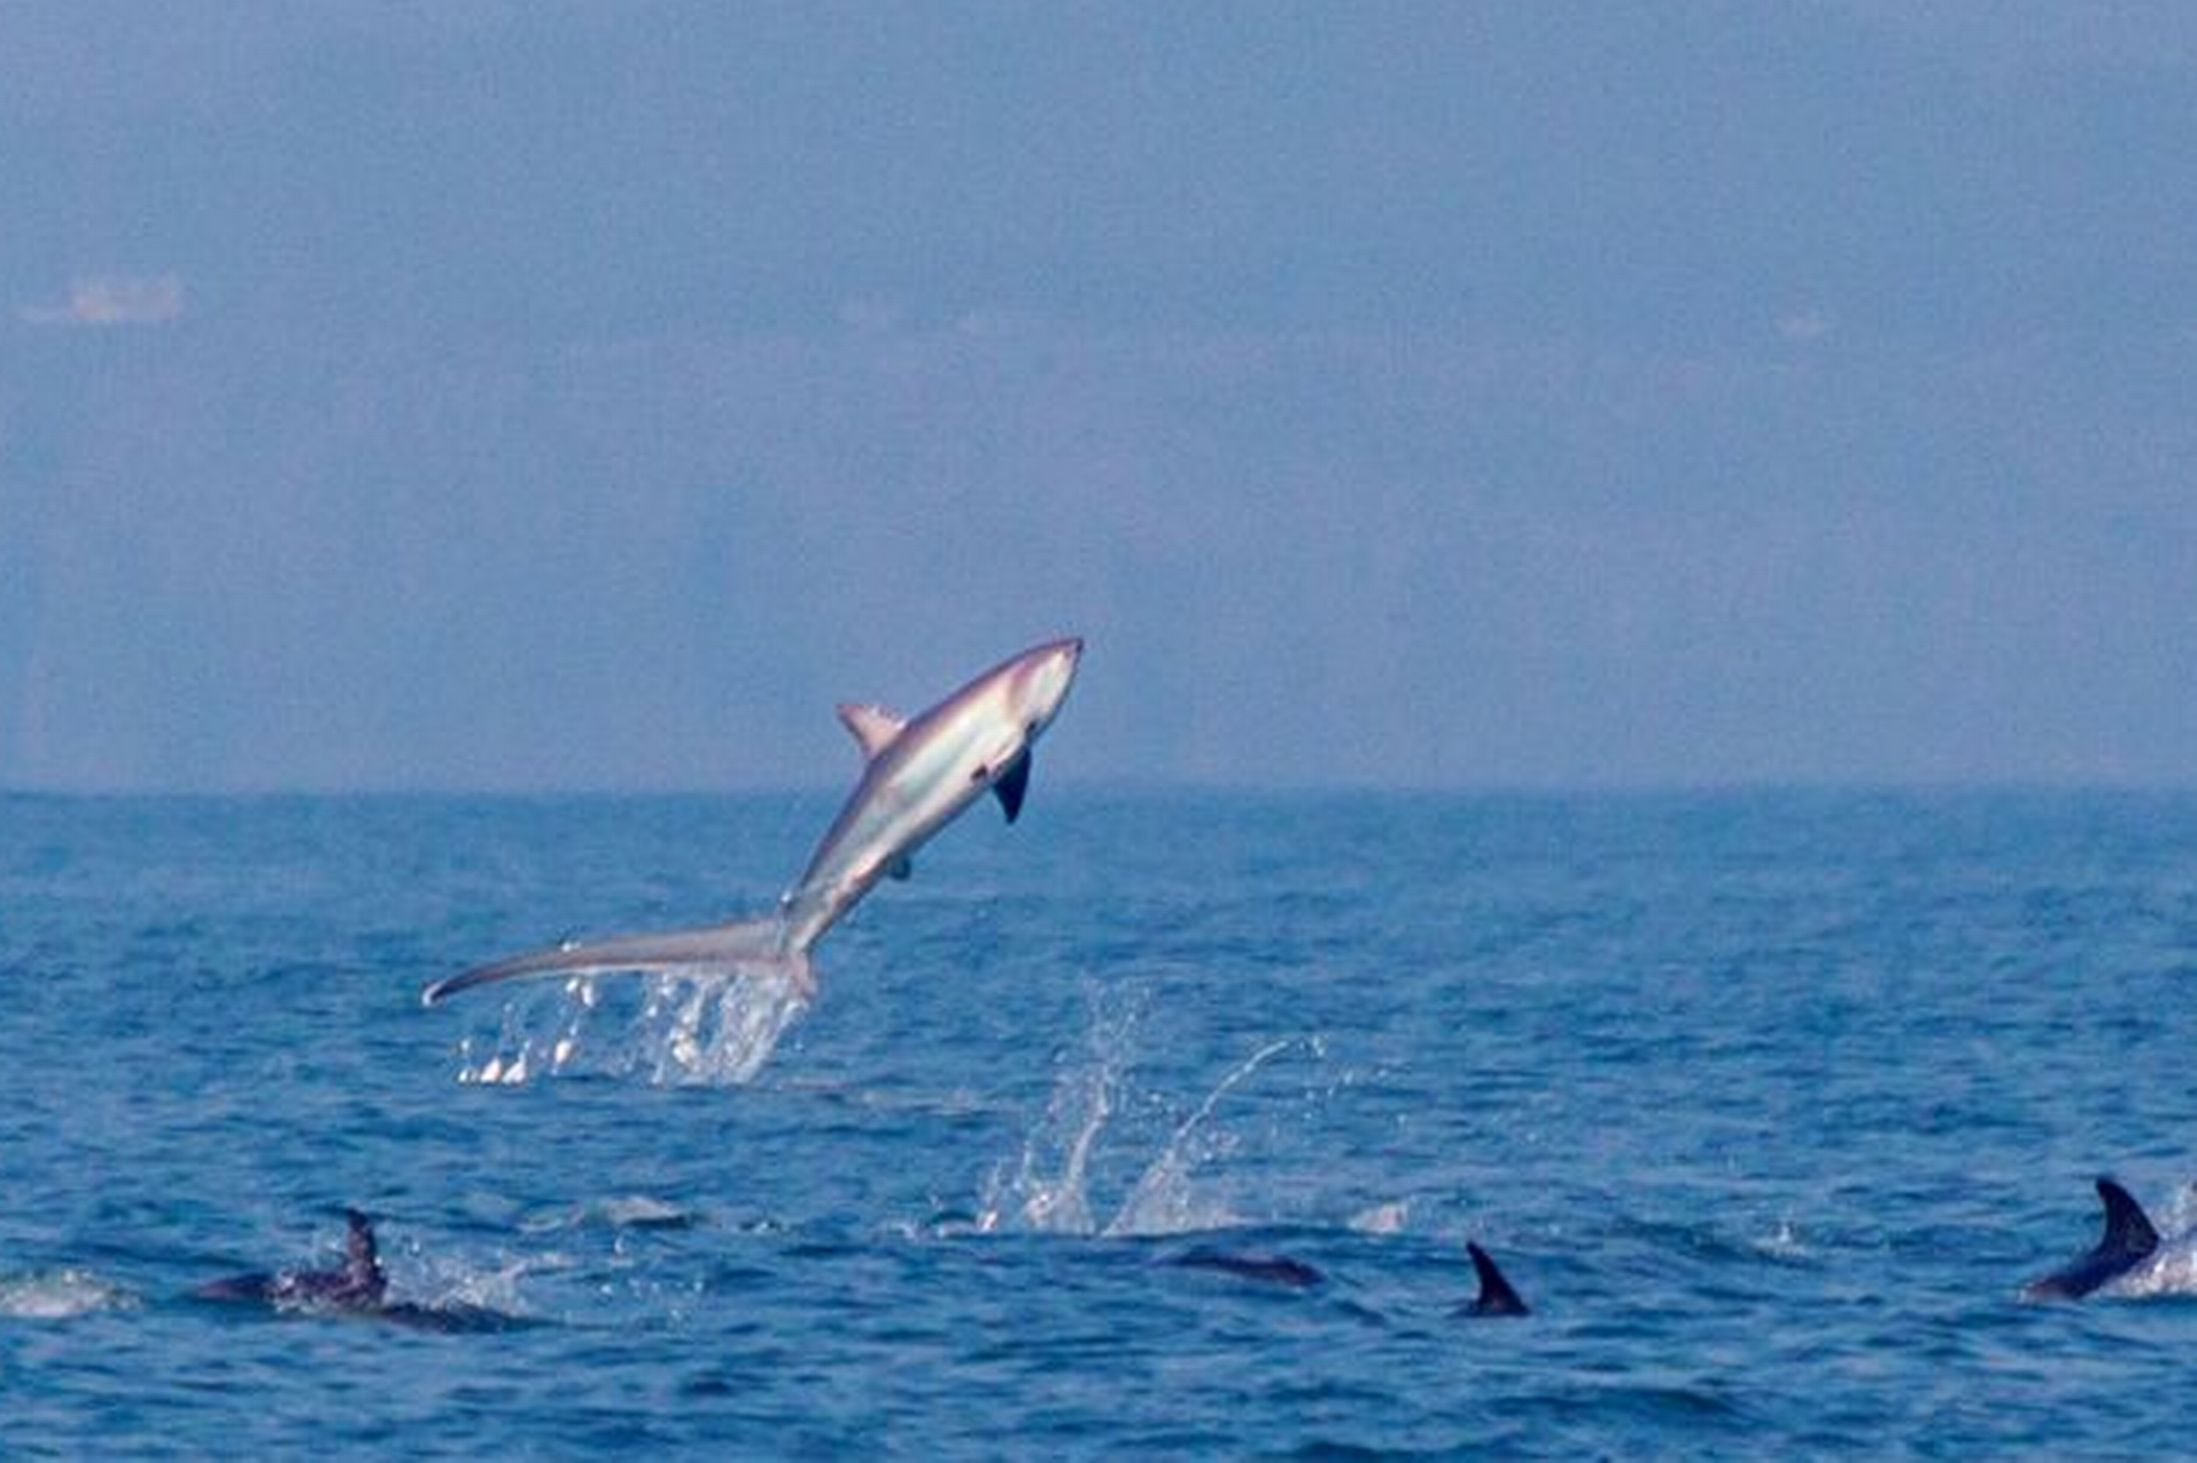 Jumping Thresher shark wallpaper